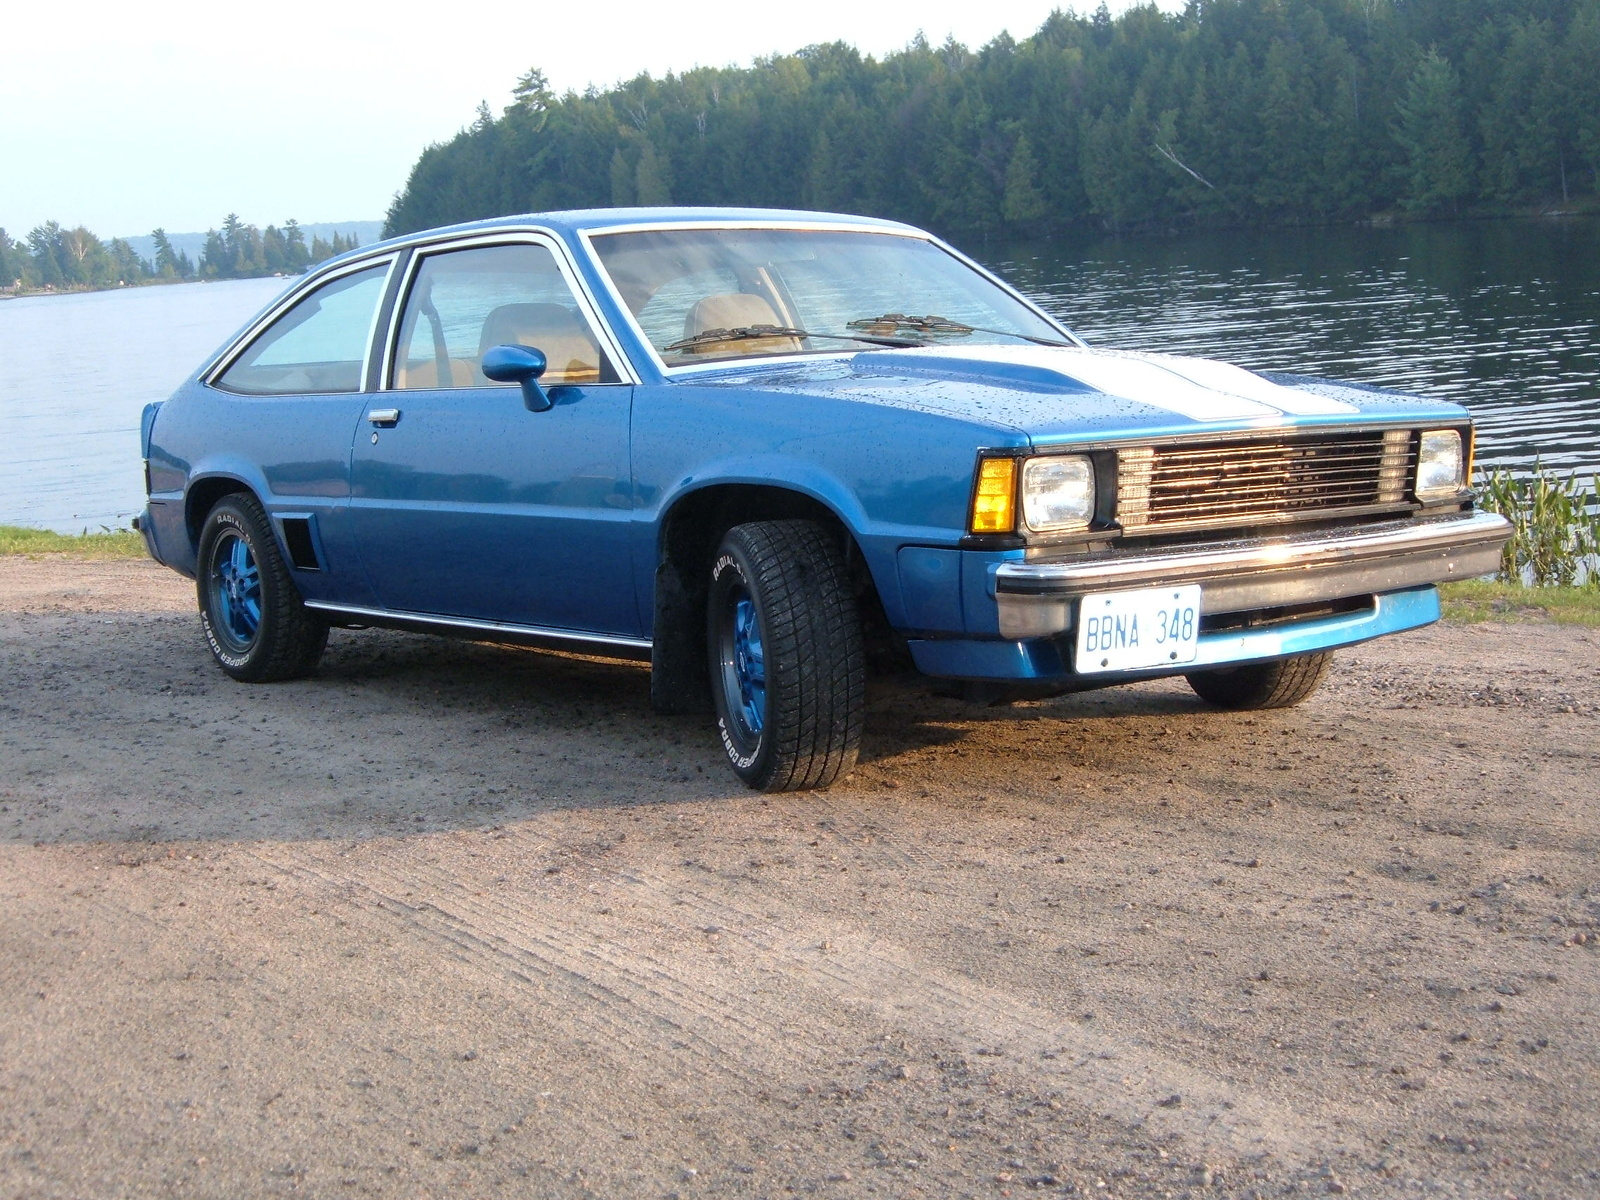 1980 Chevrolet Citation picture